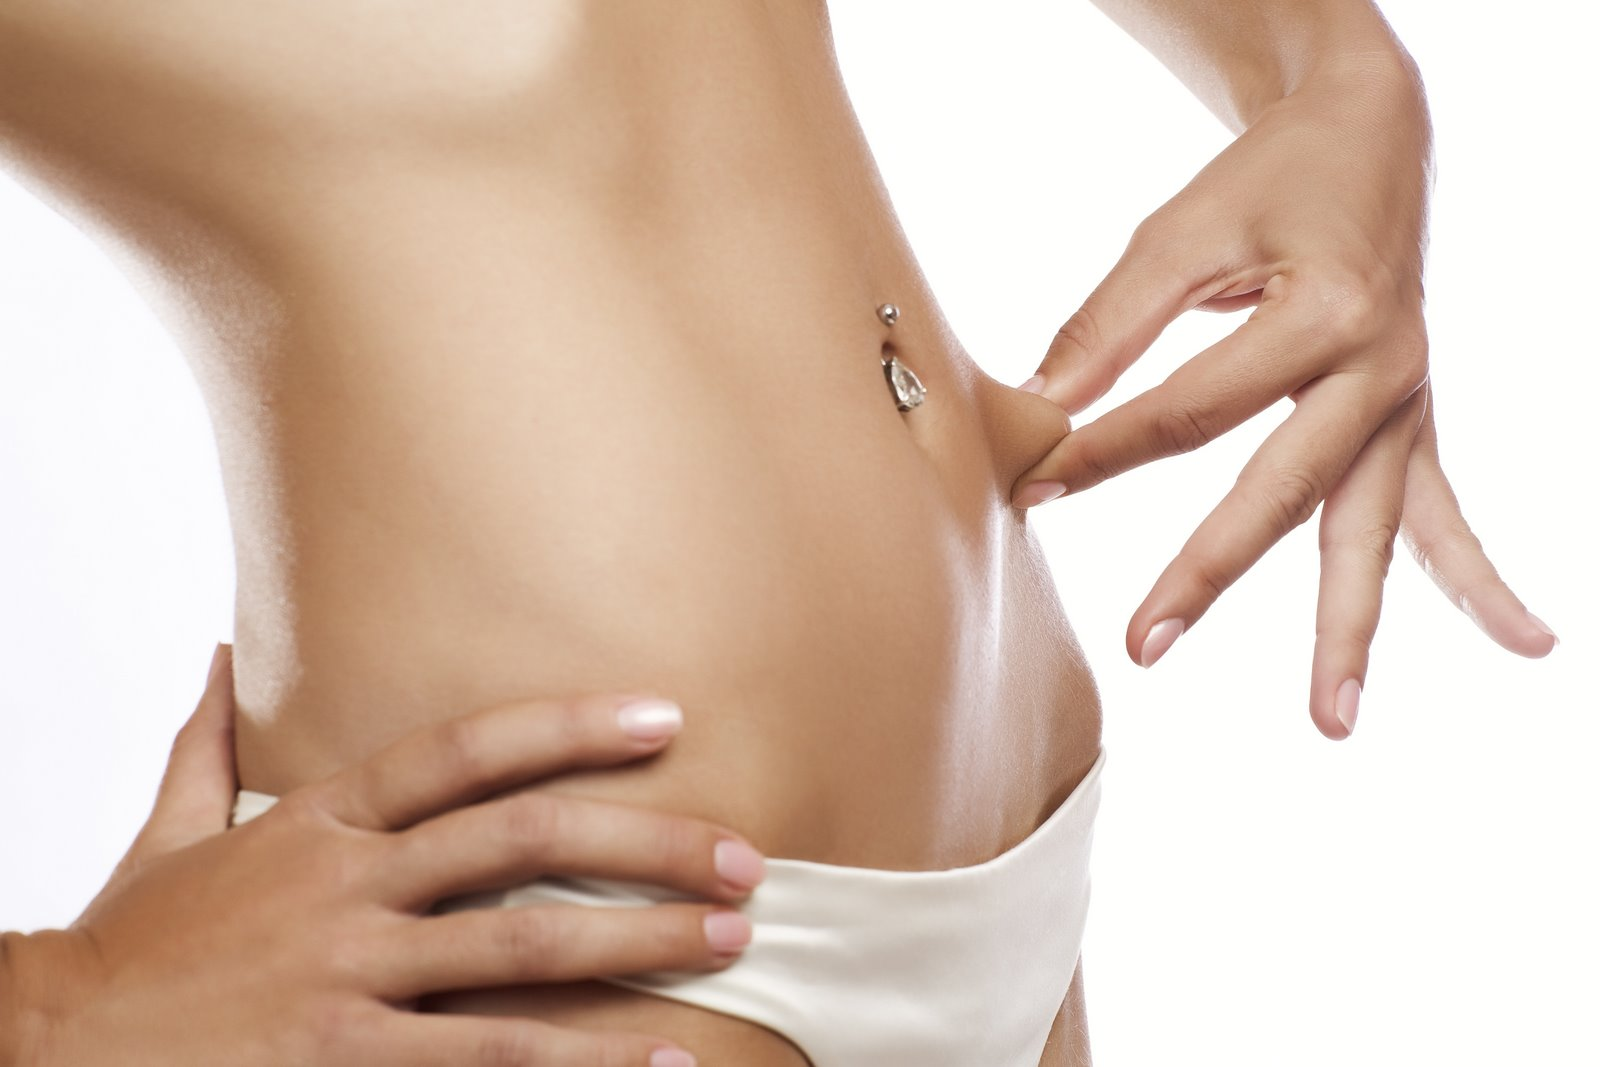 8 Simple Ways To Shape Your Belly